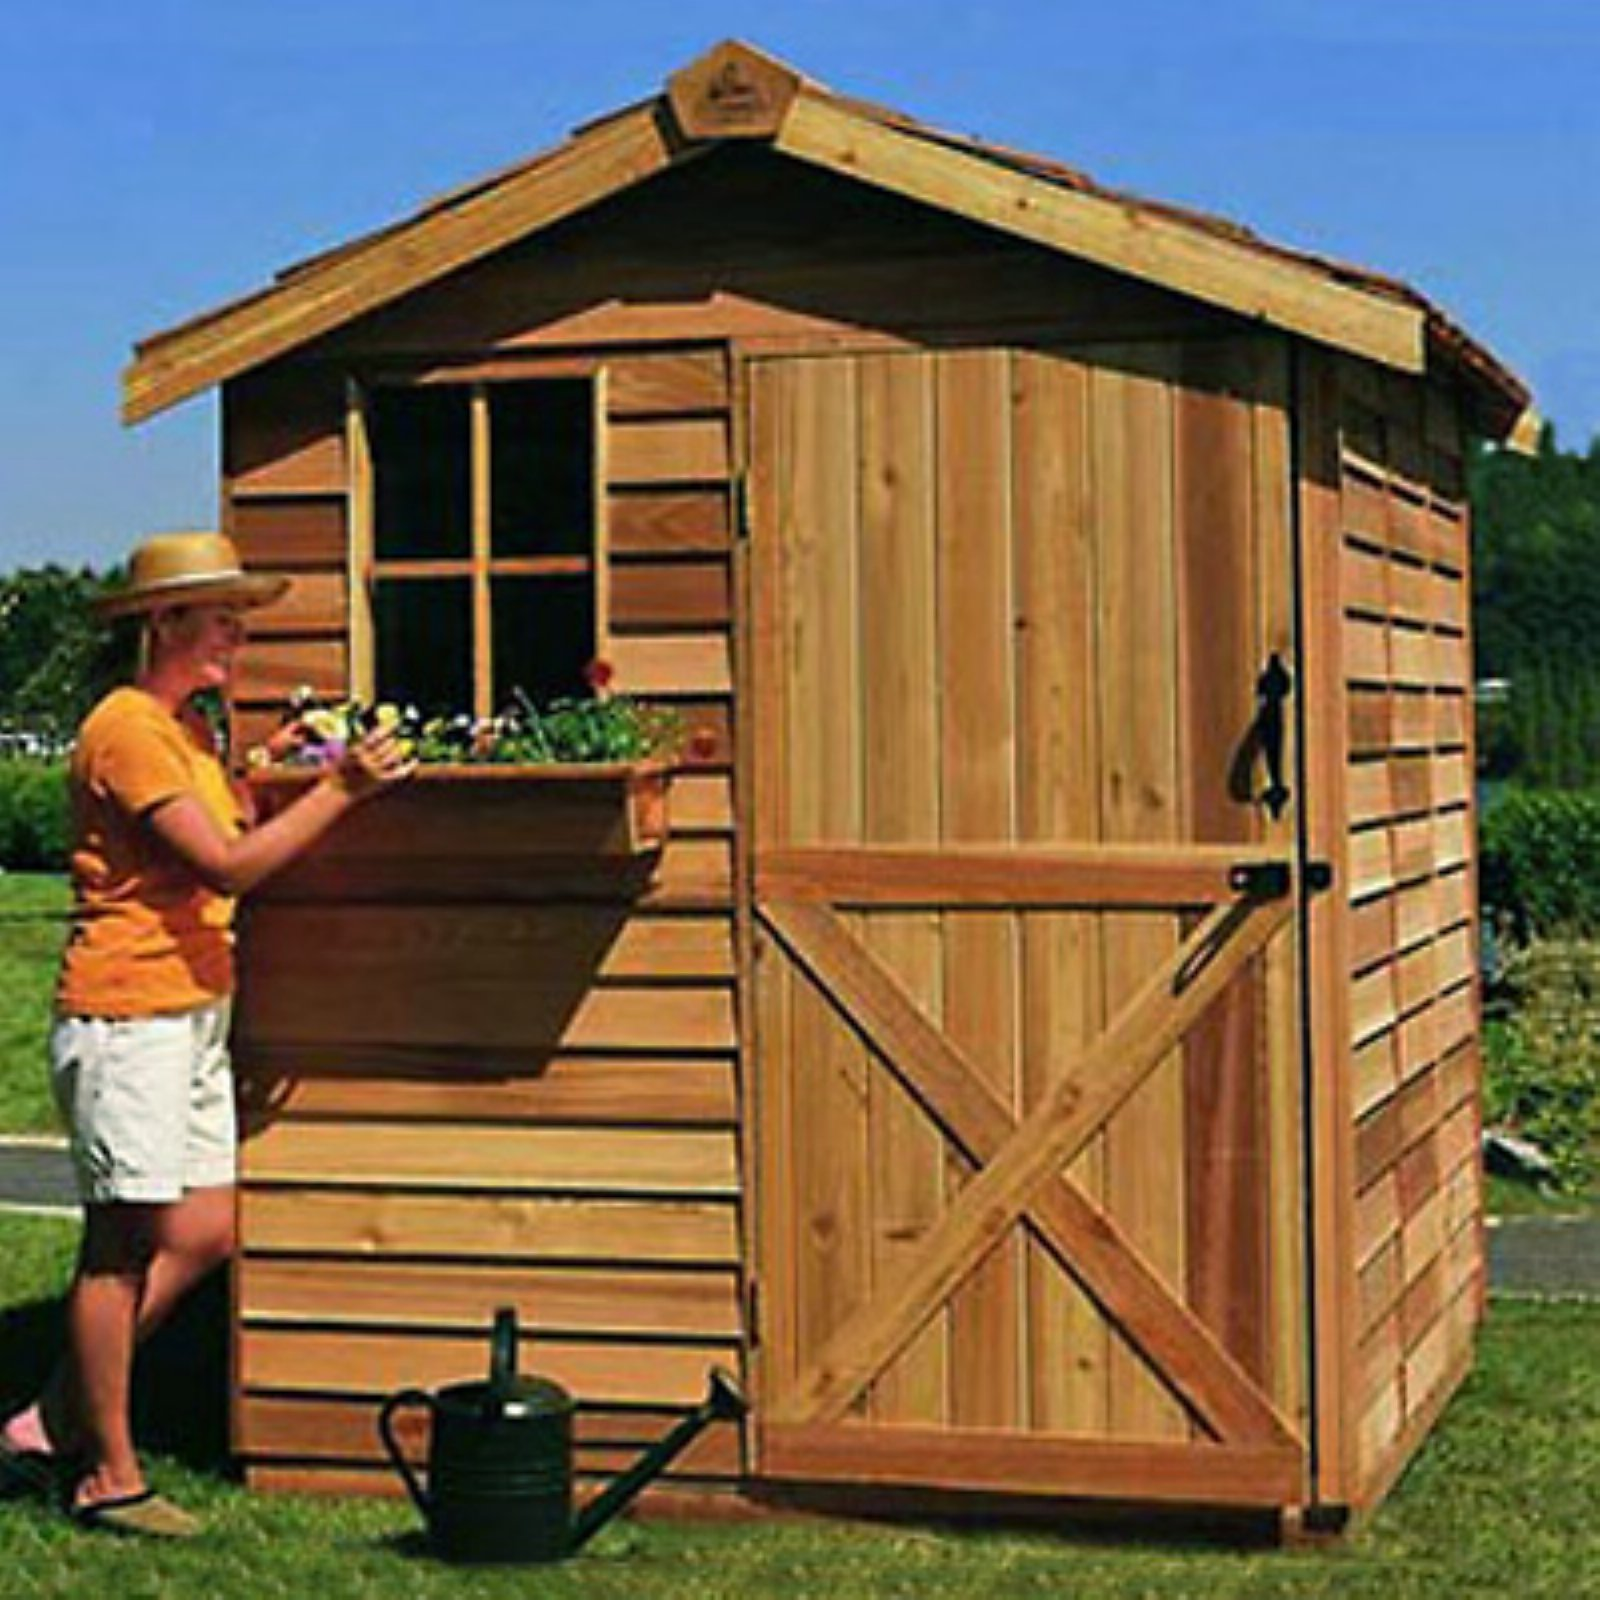 Cedar Shed 6 x 9 ft. Gardener Storage Shed